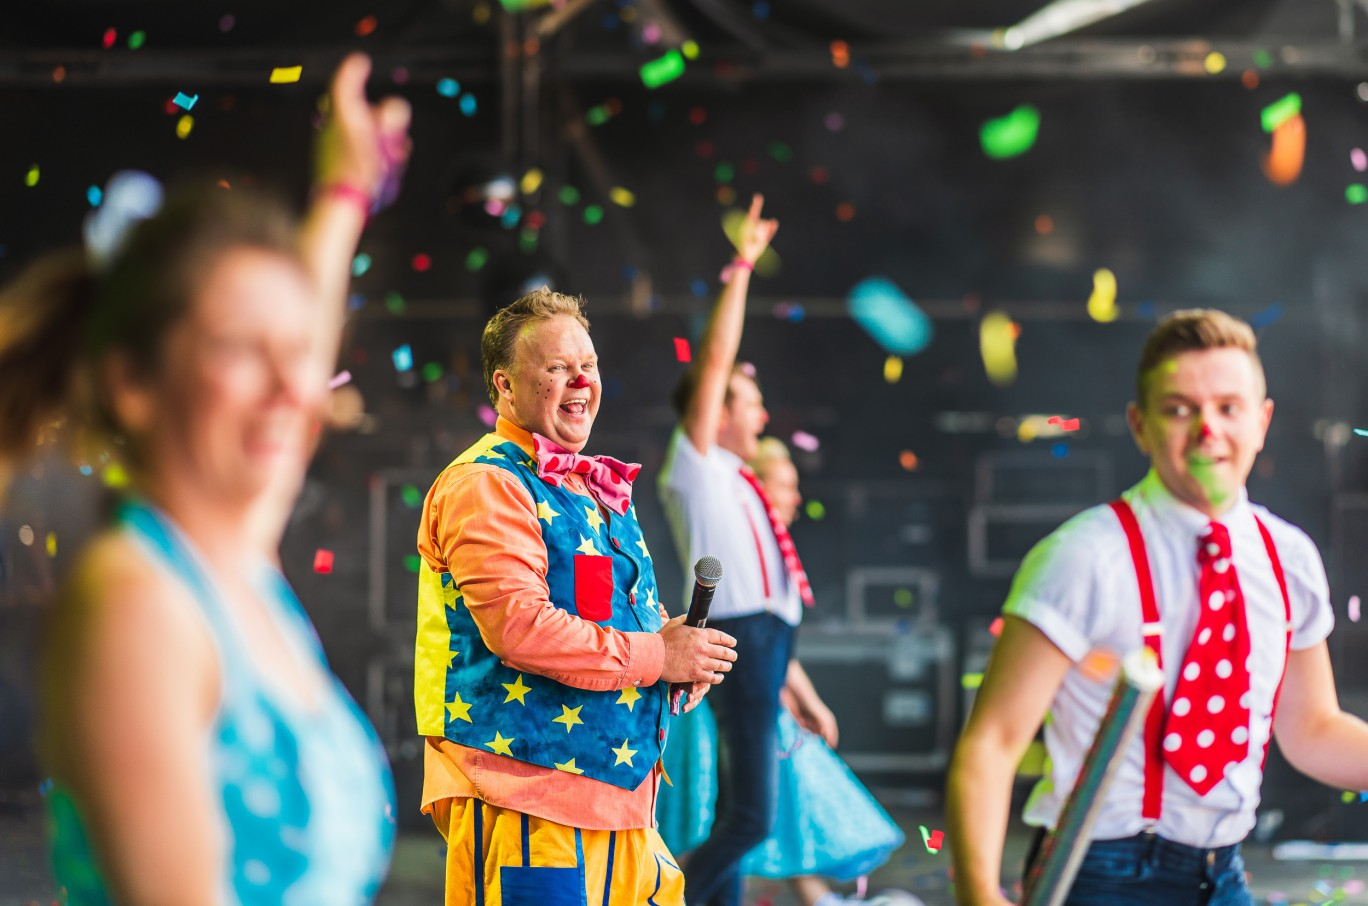 Day3_CastleStage_MrTumble_MM-8023.jpg